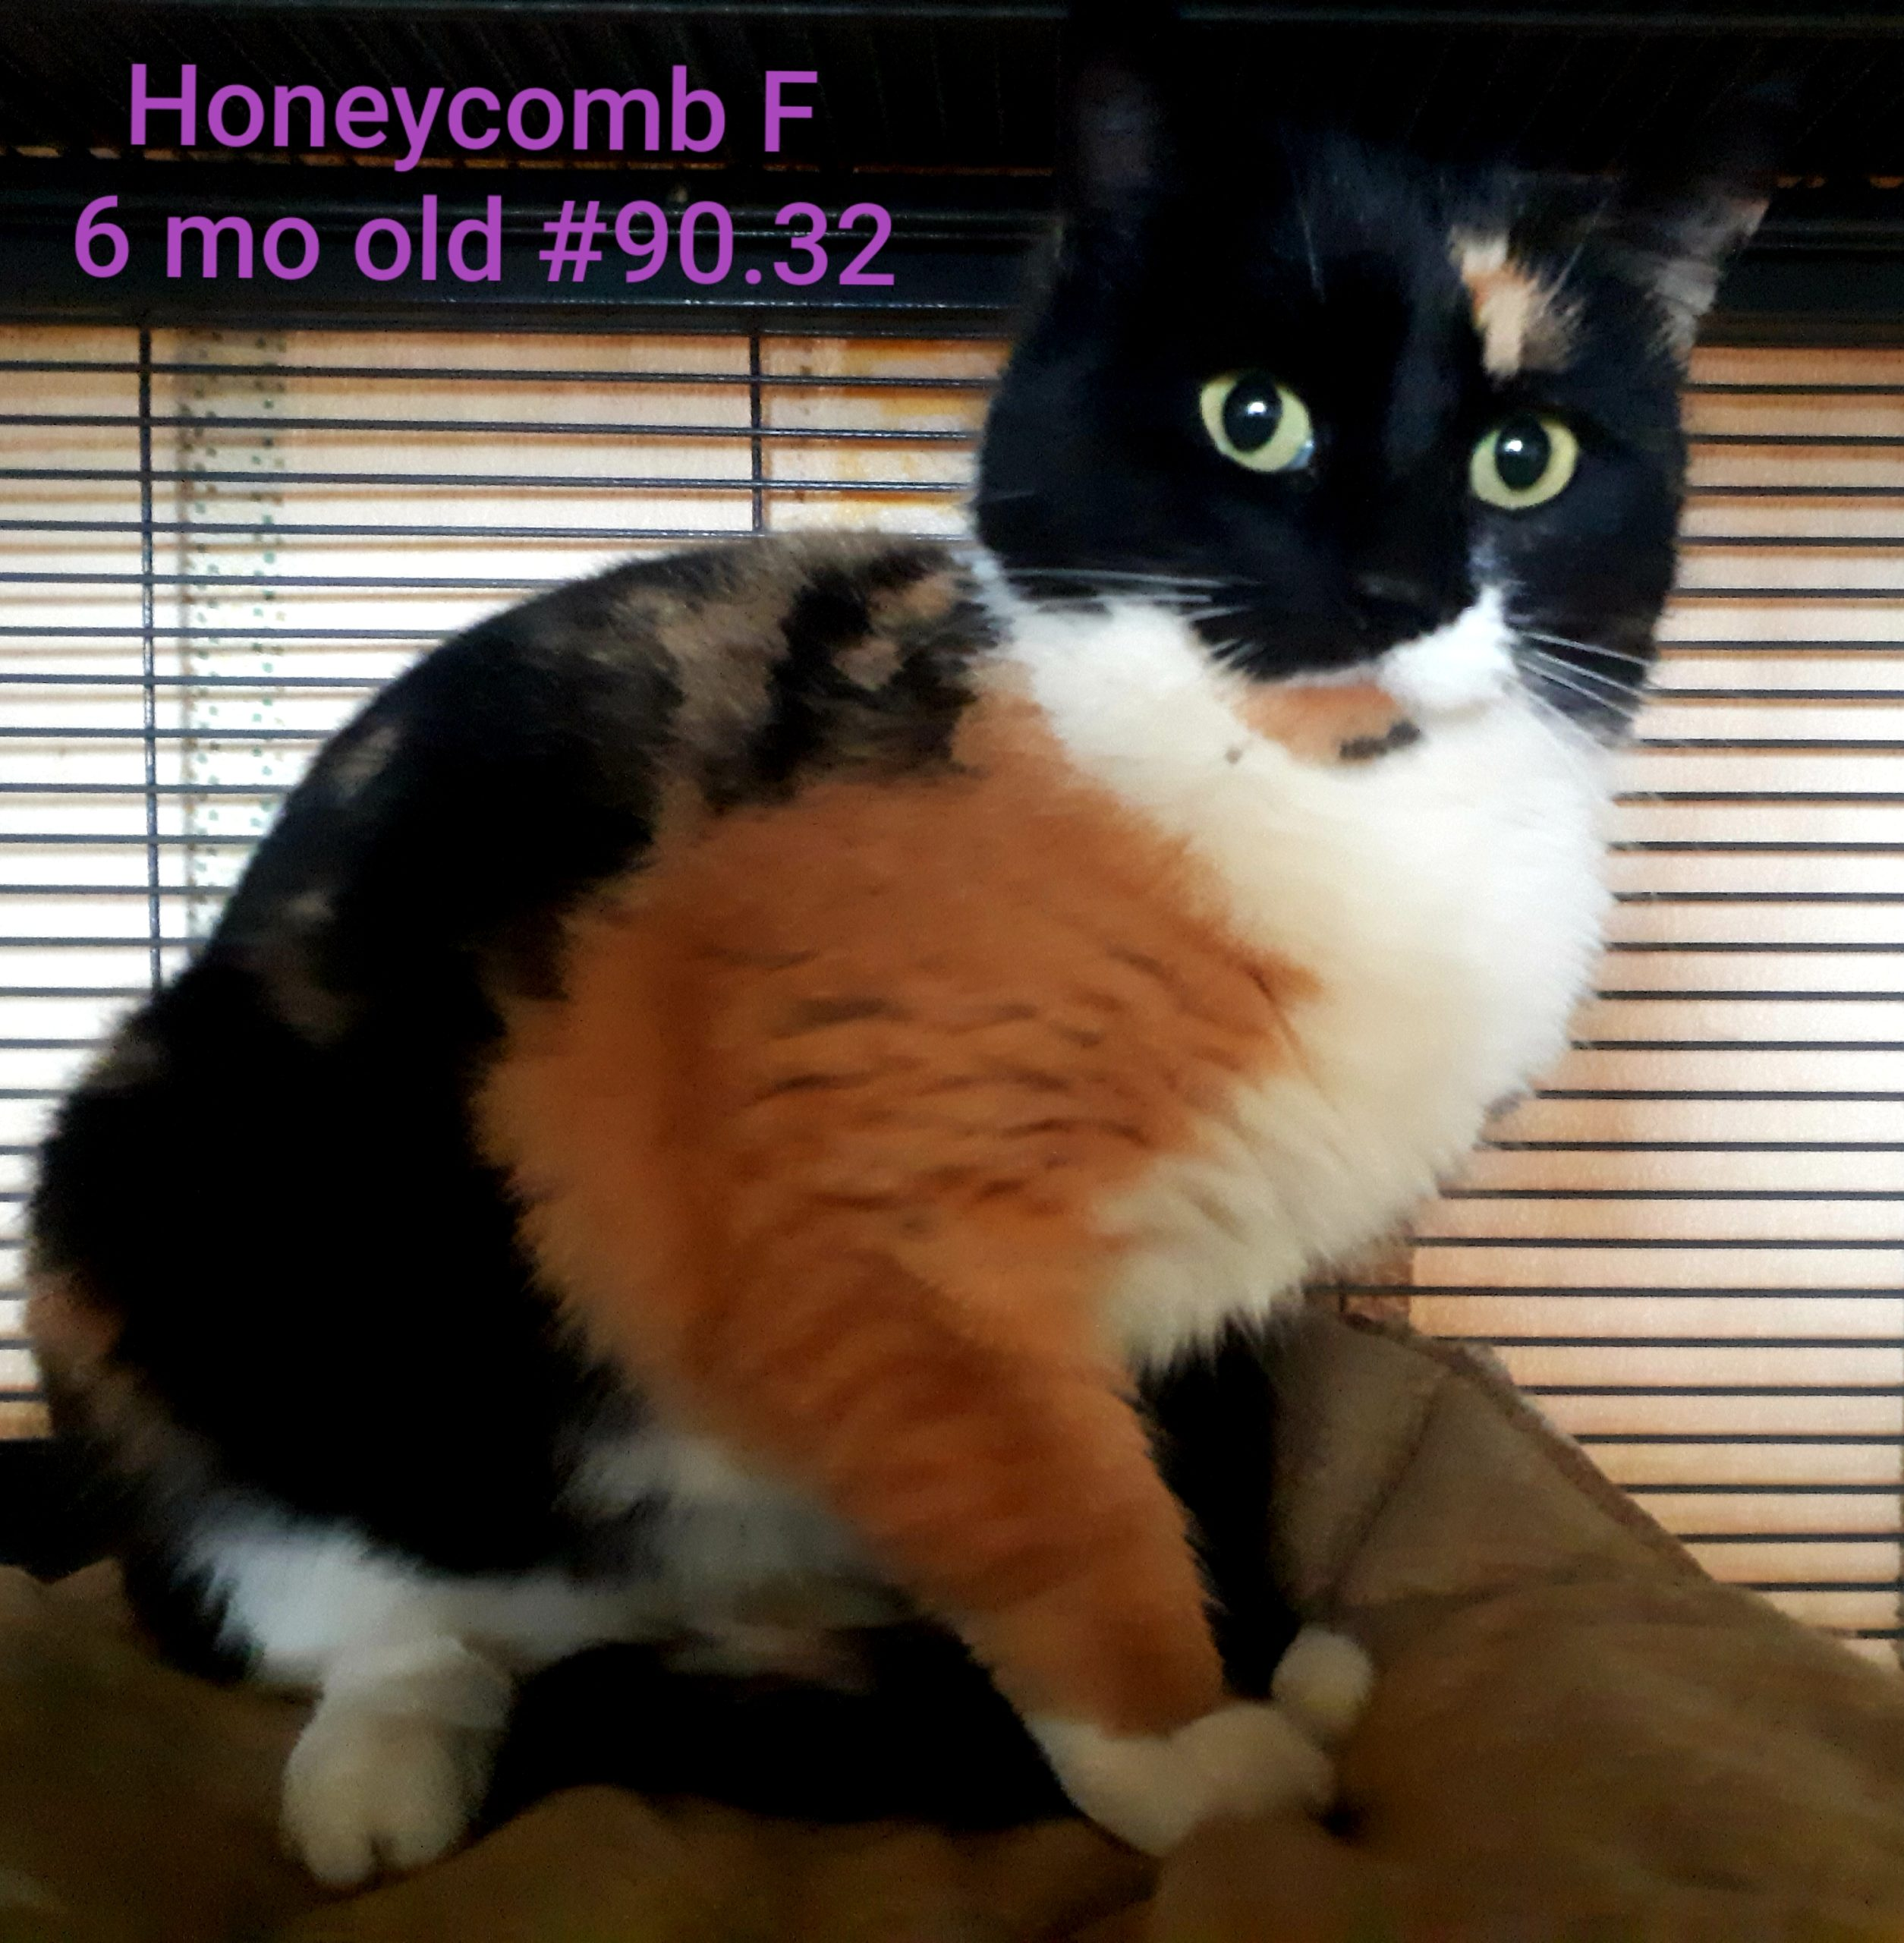 Honeycomb, Digby – currently in foster care